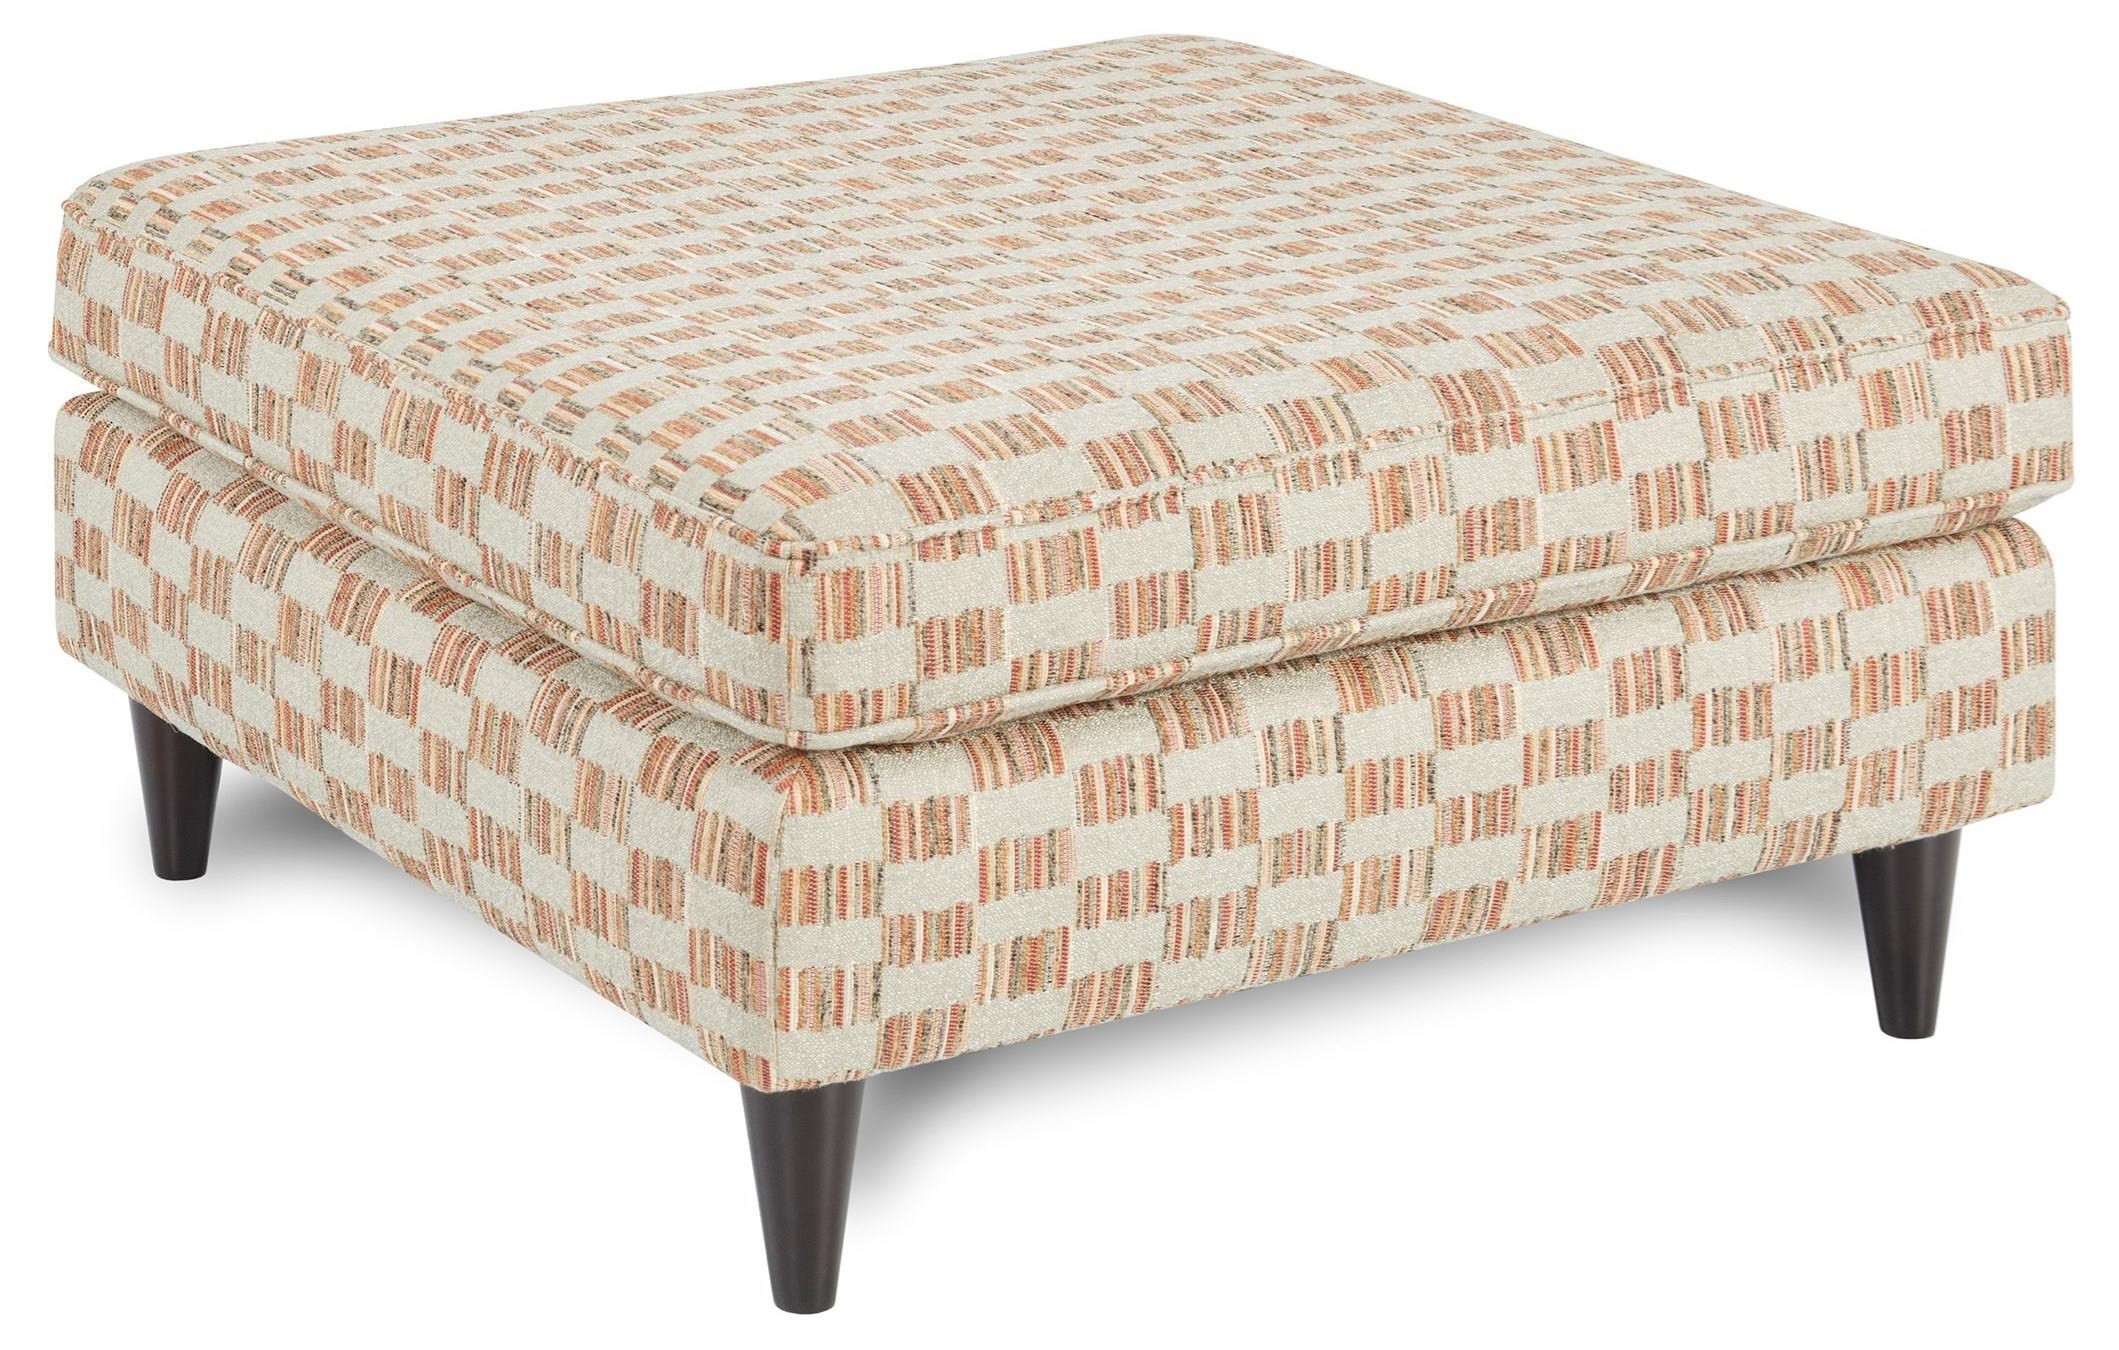 170 Ottoman by Powell's V.I.P. at Powell's Furniture and Mattress